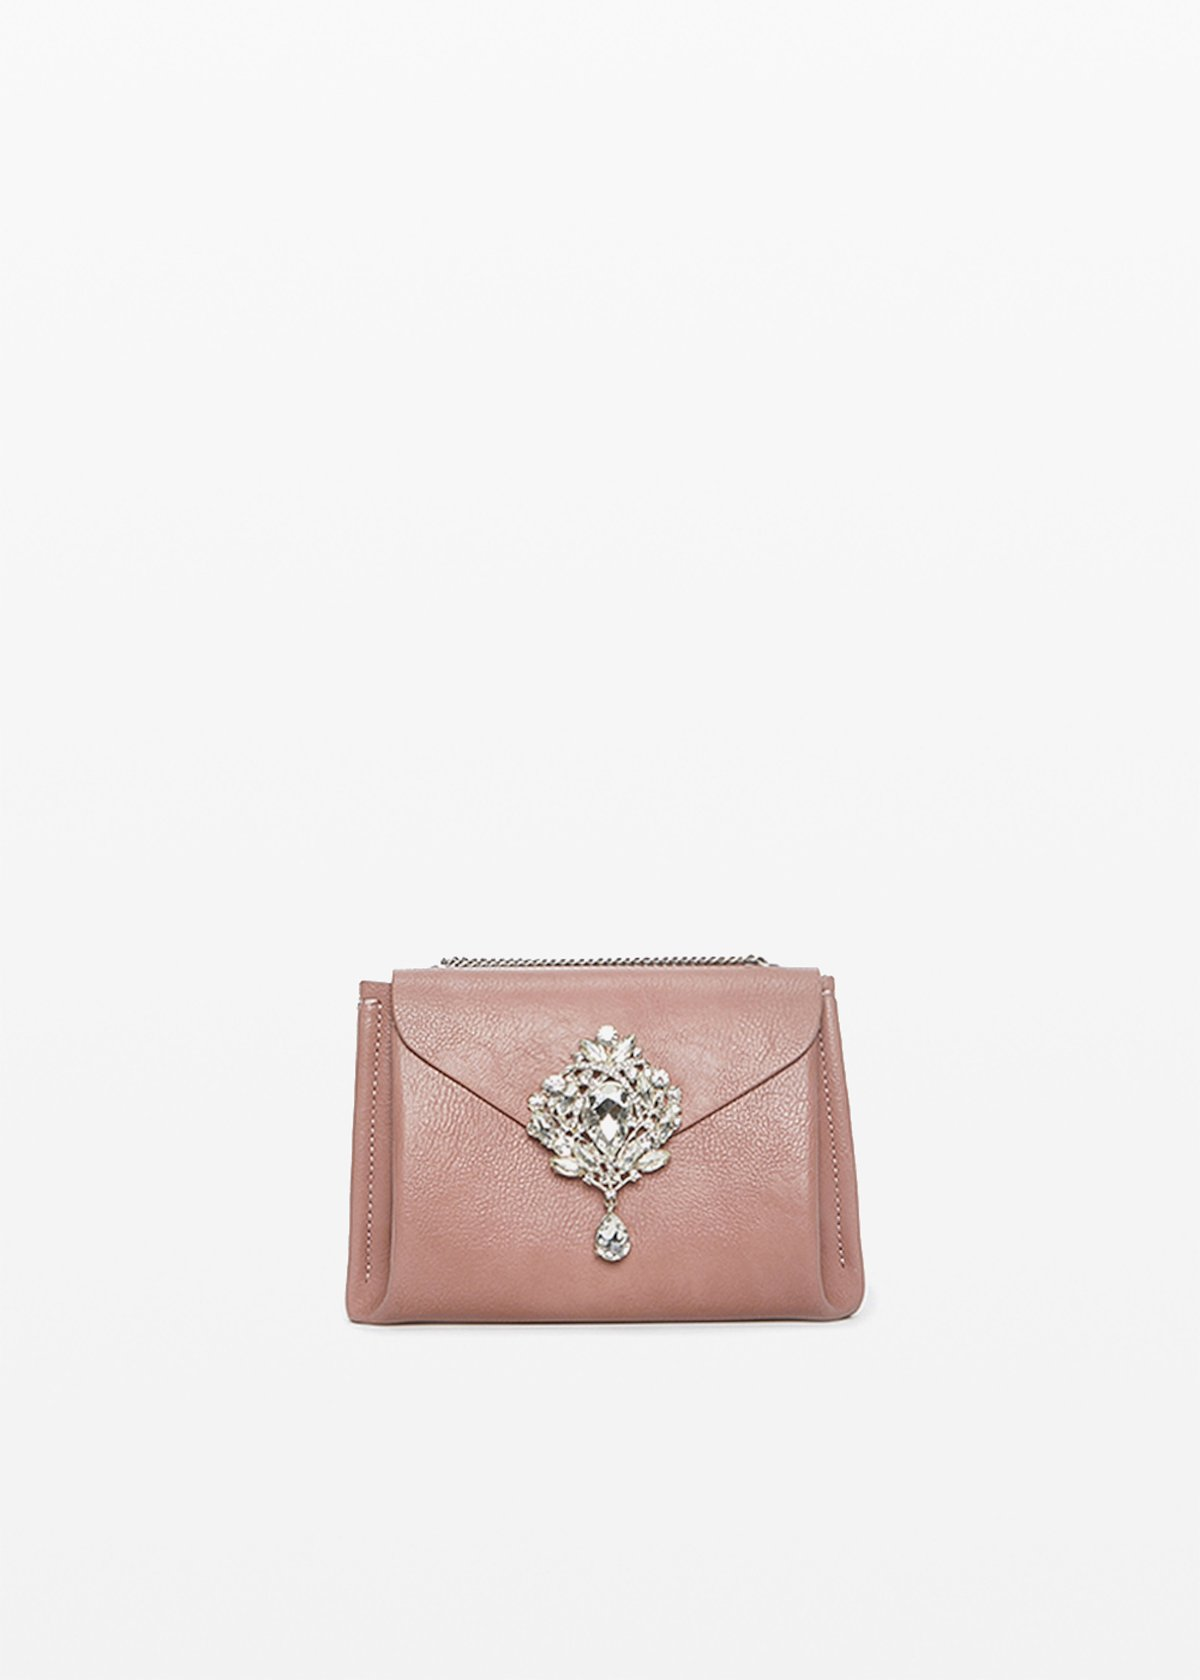 Bluey shoulder bag with chain strap - Calcite - Woman